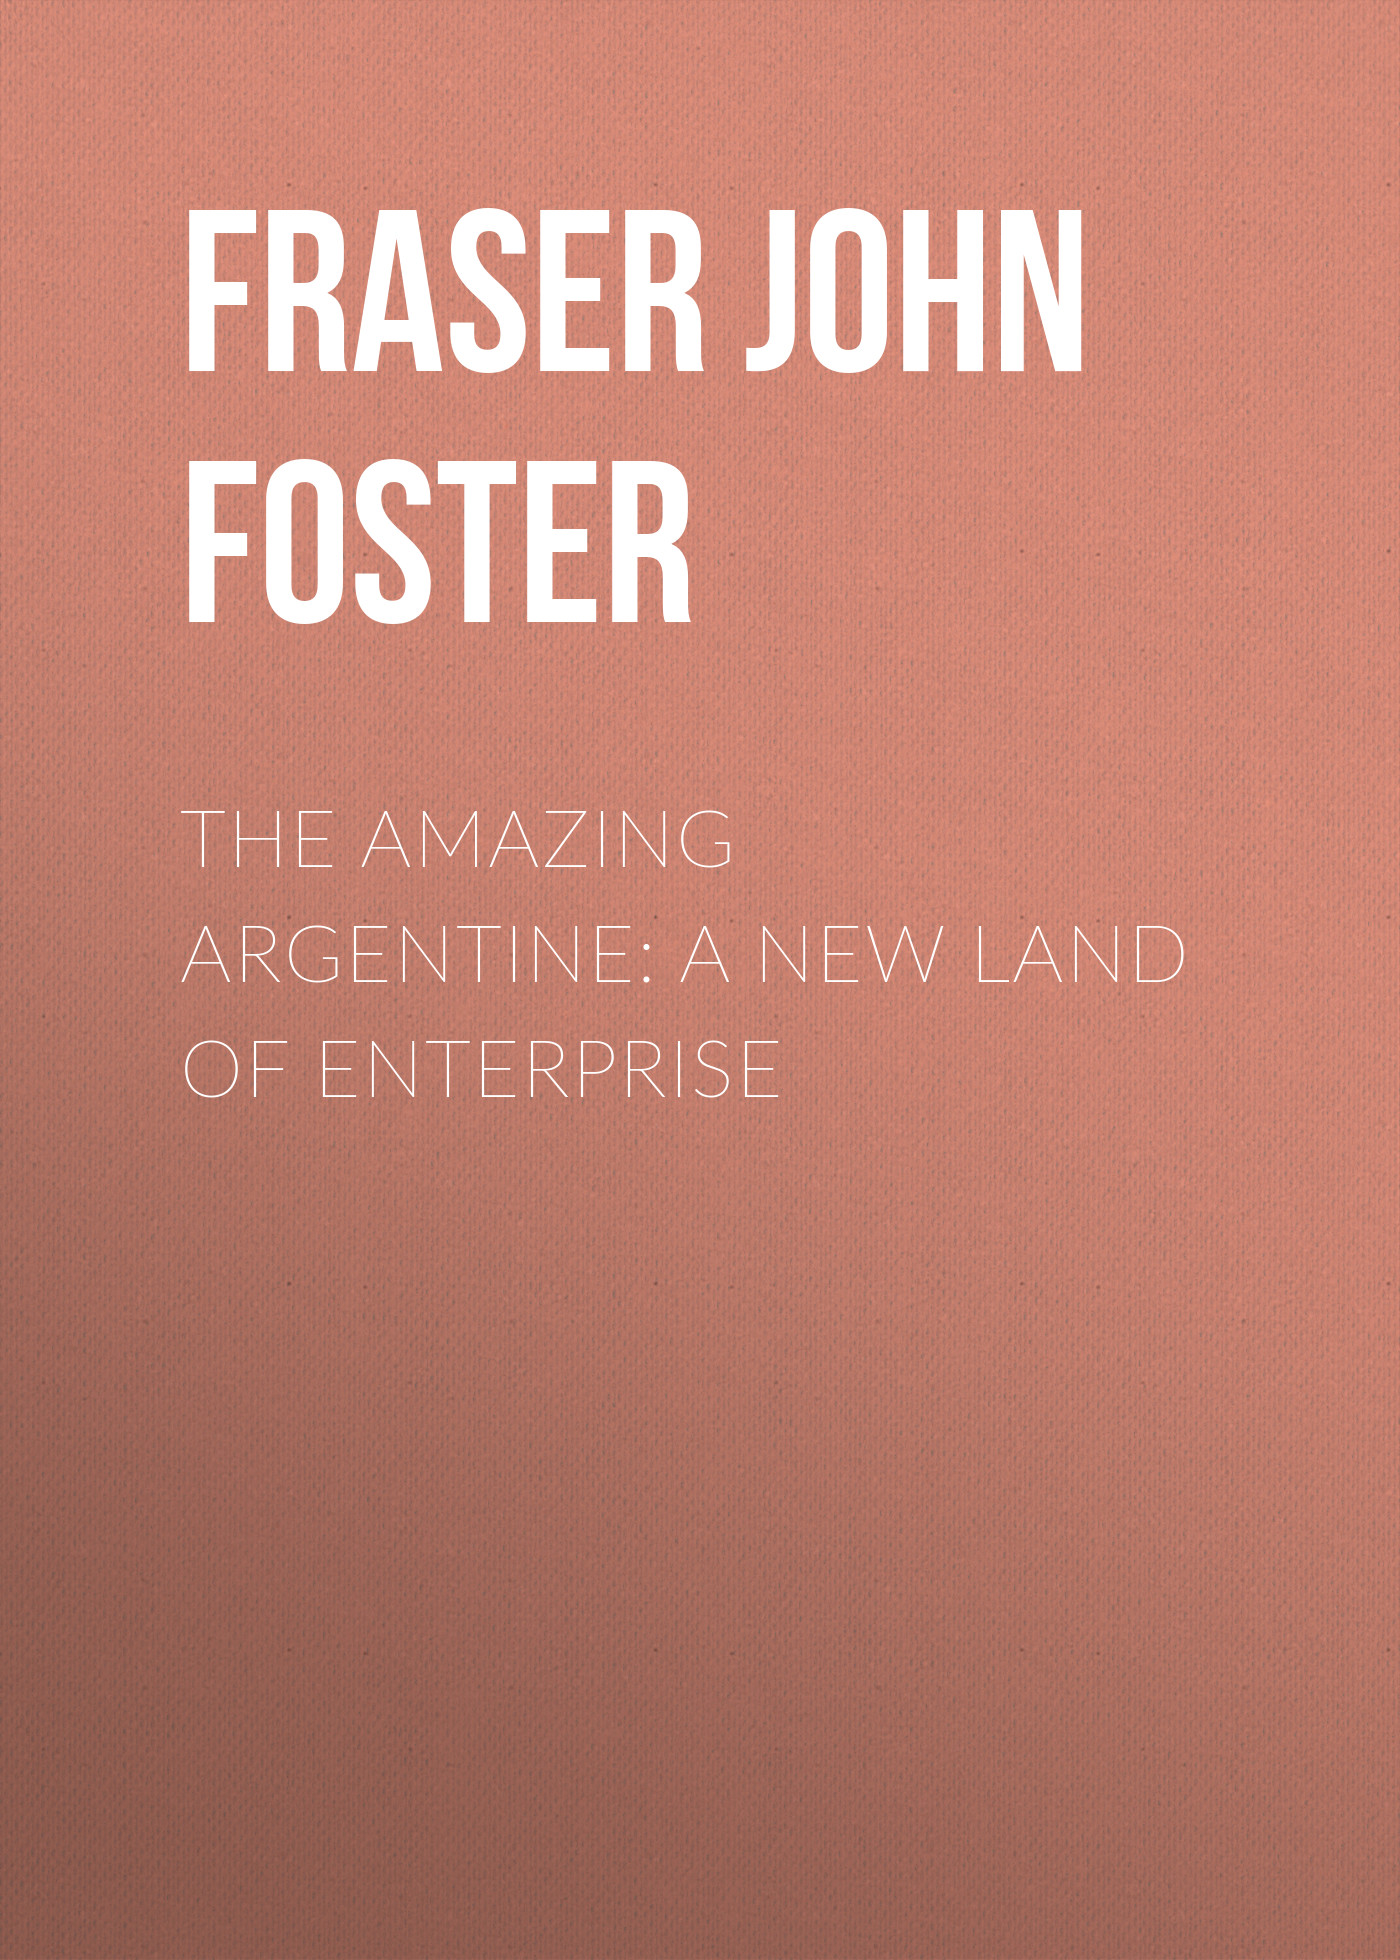 Fraser John Foster The Amazing Argentine: A New Land of Enterprise цены